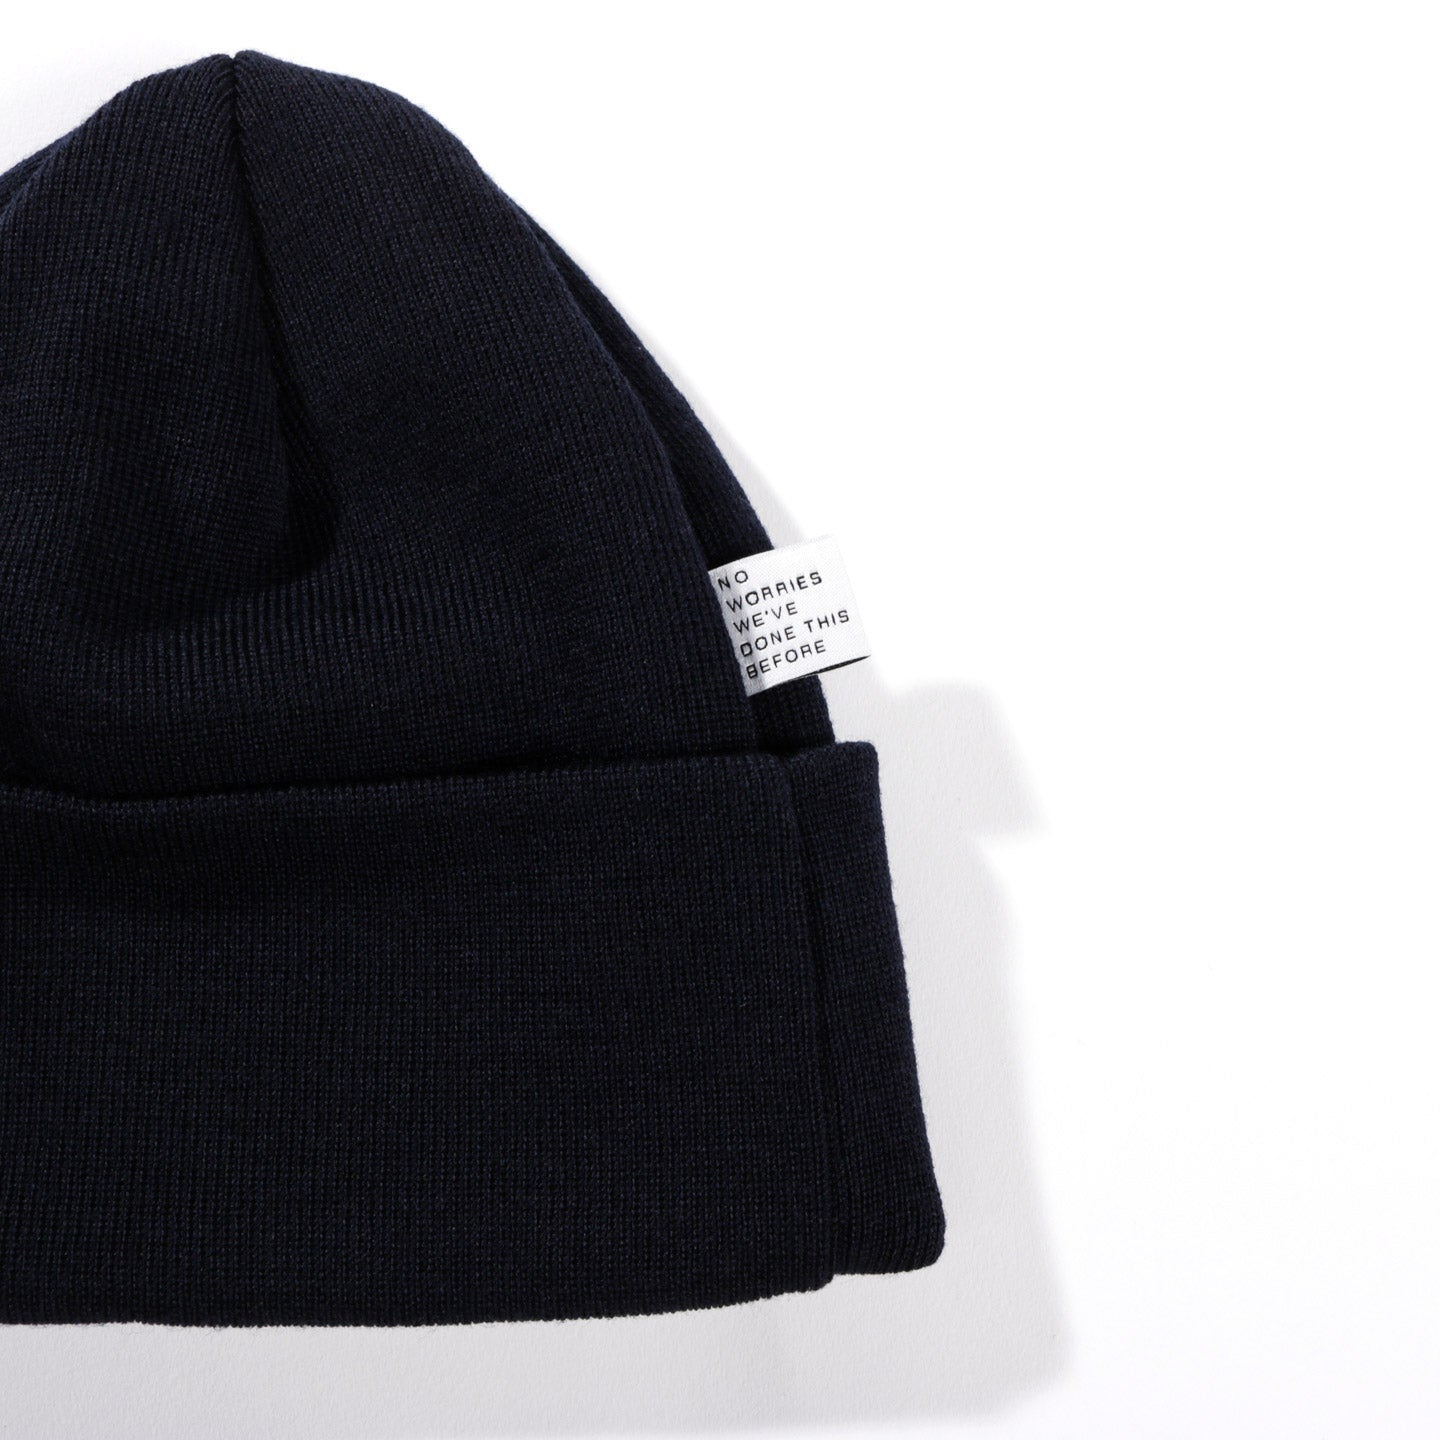 A KIND OF GUISE PERMANENTS BEANIE NAVY